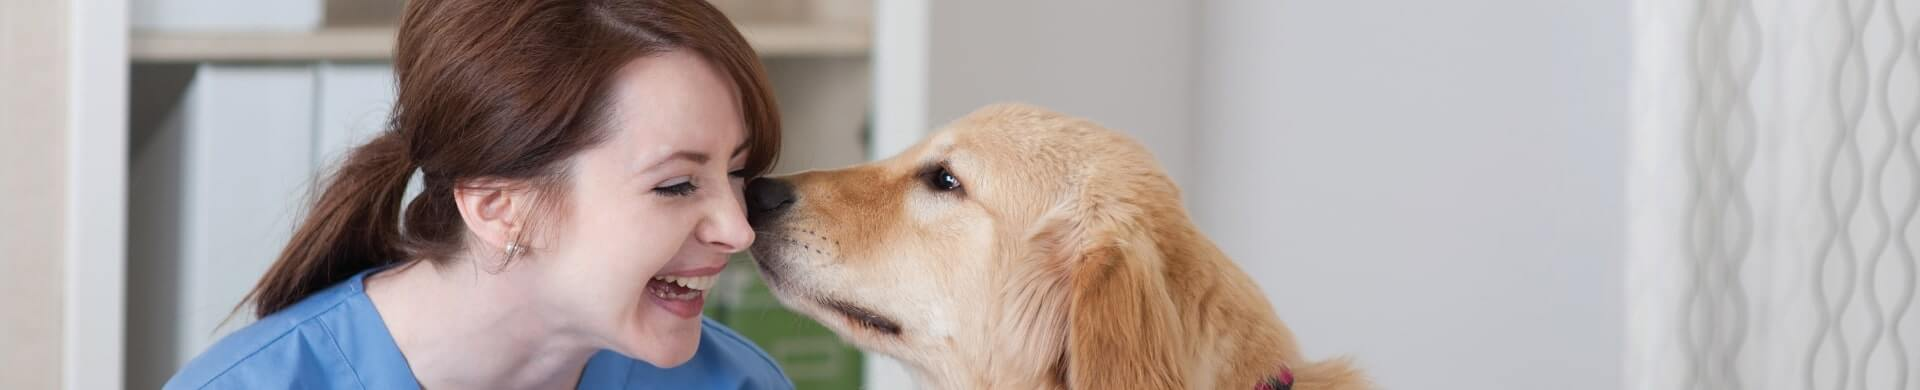 Pet therapy banner image